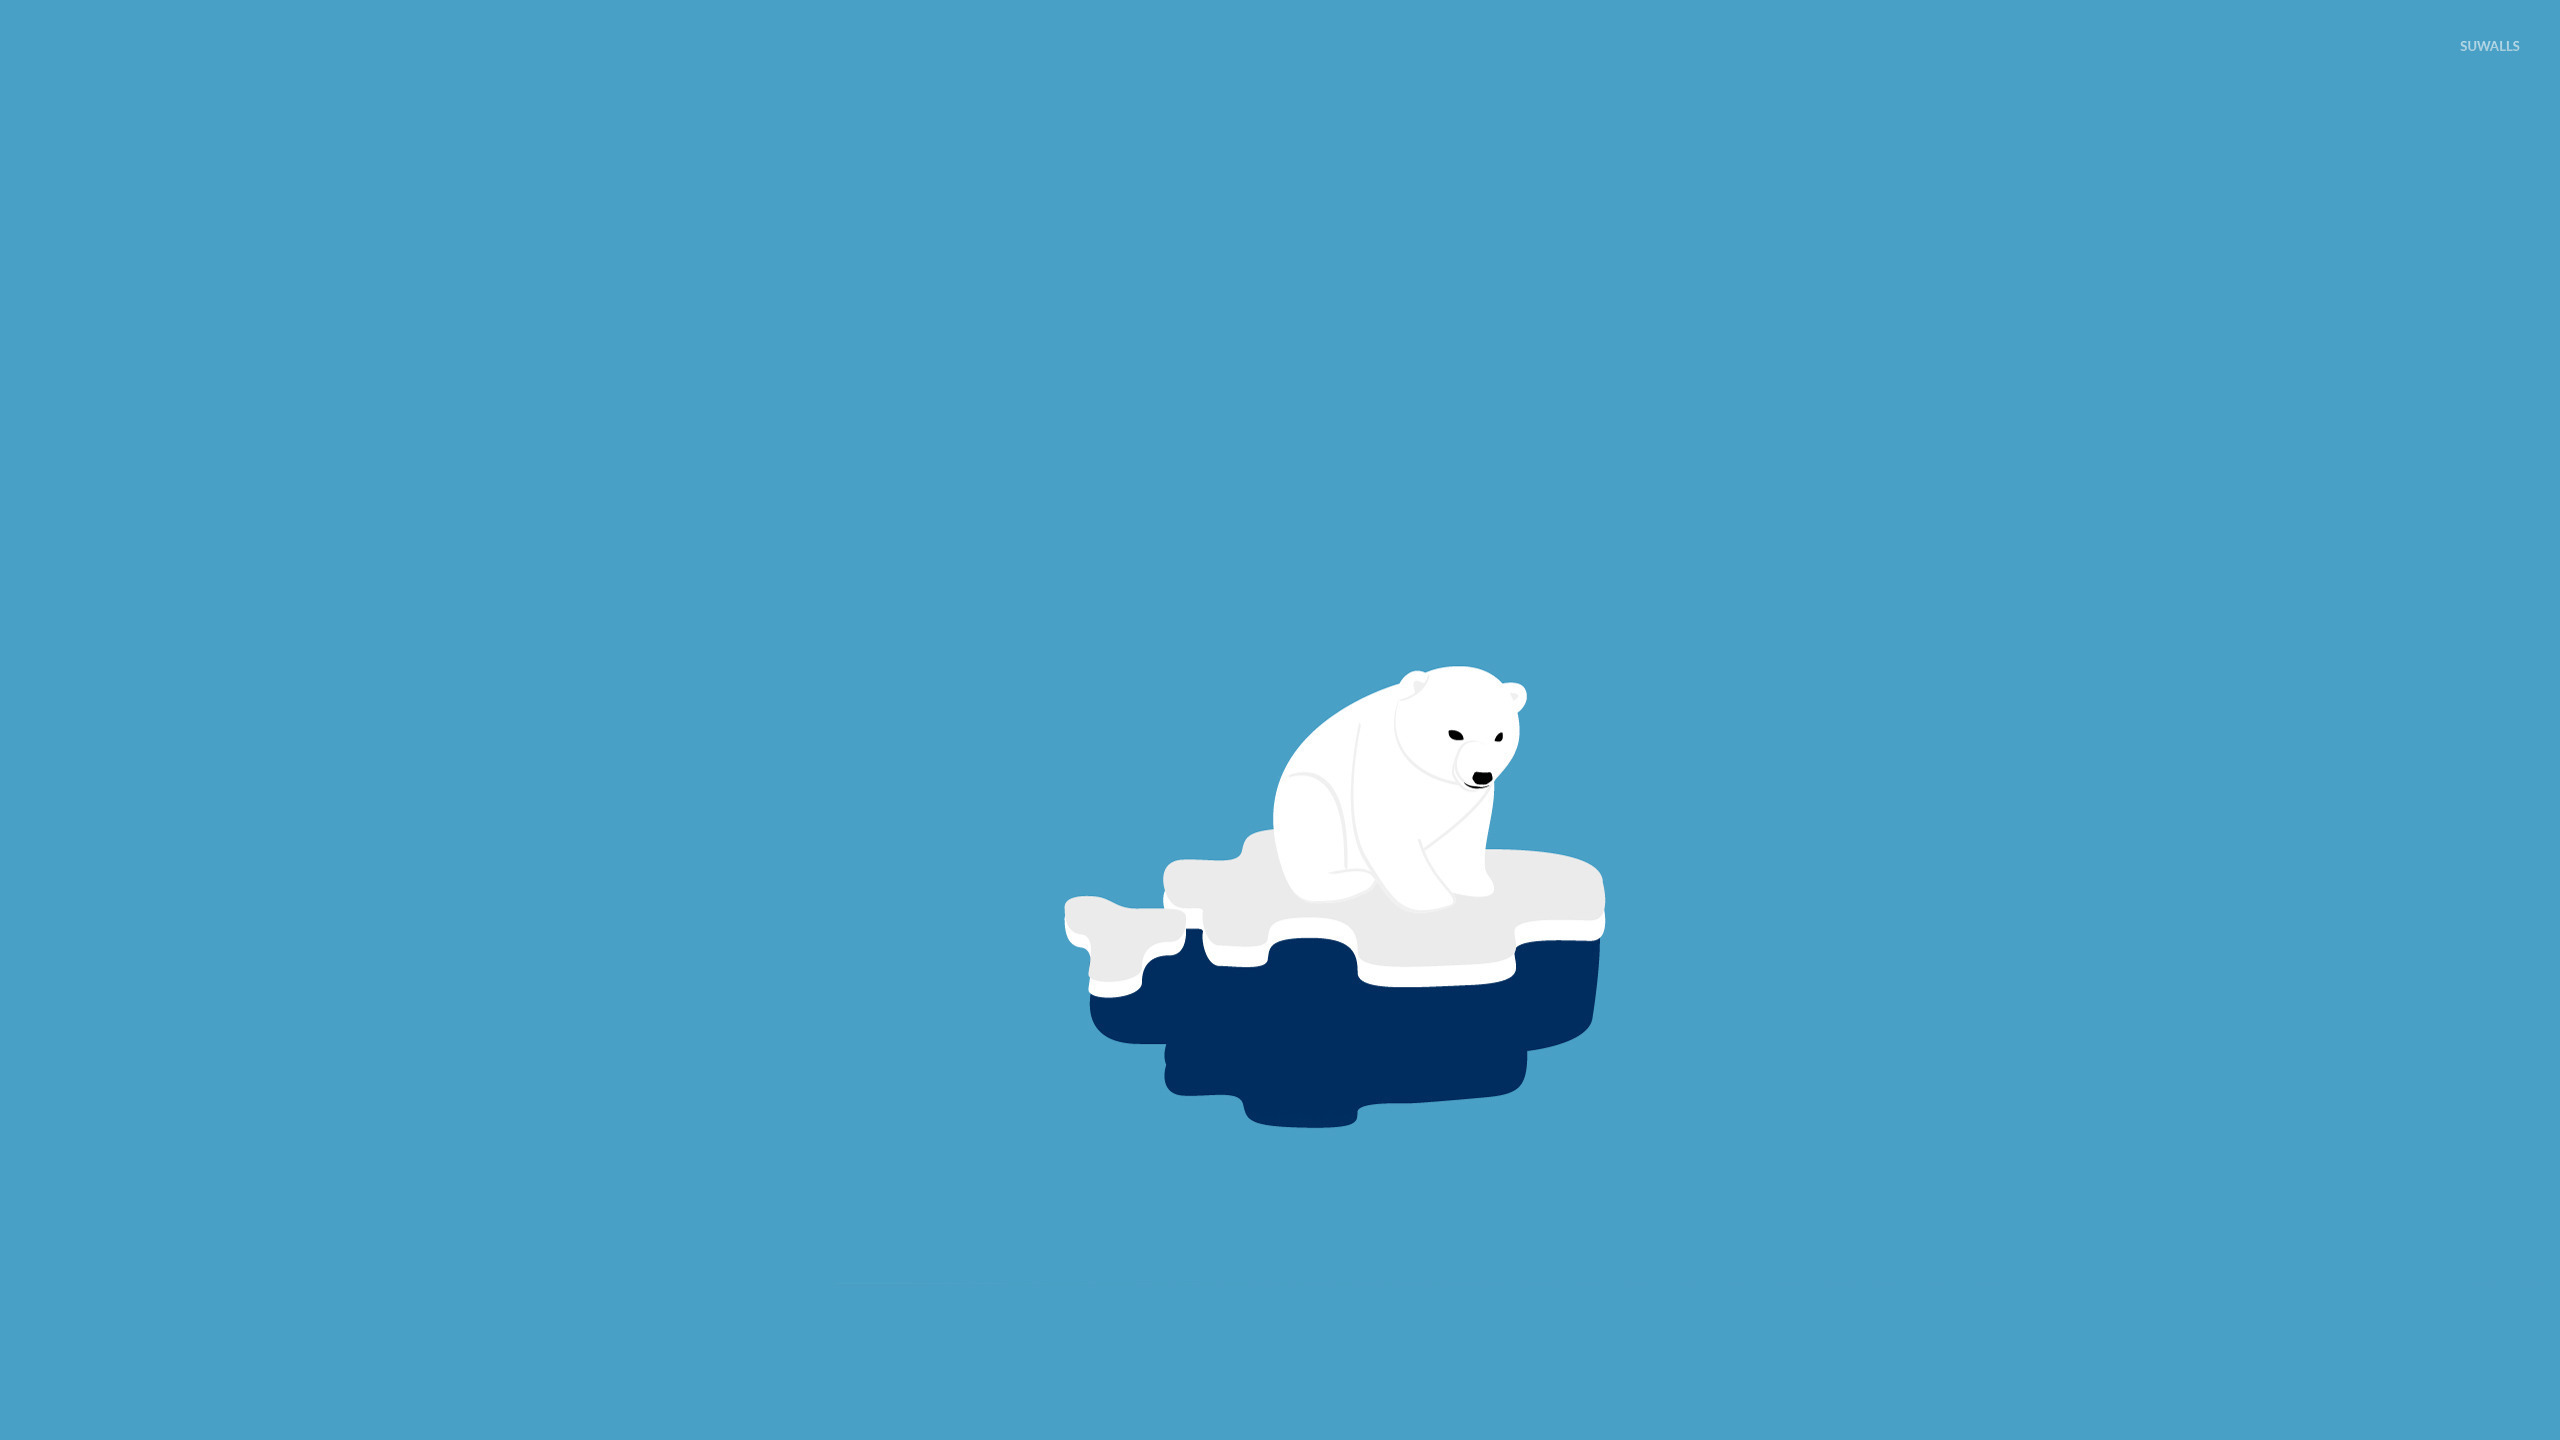 Game Of Thrones Quotes Wallpaper 1920x1080 Polar Bear Wallpaper Minimalistic Wallpapers 14625